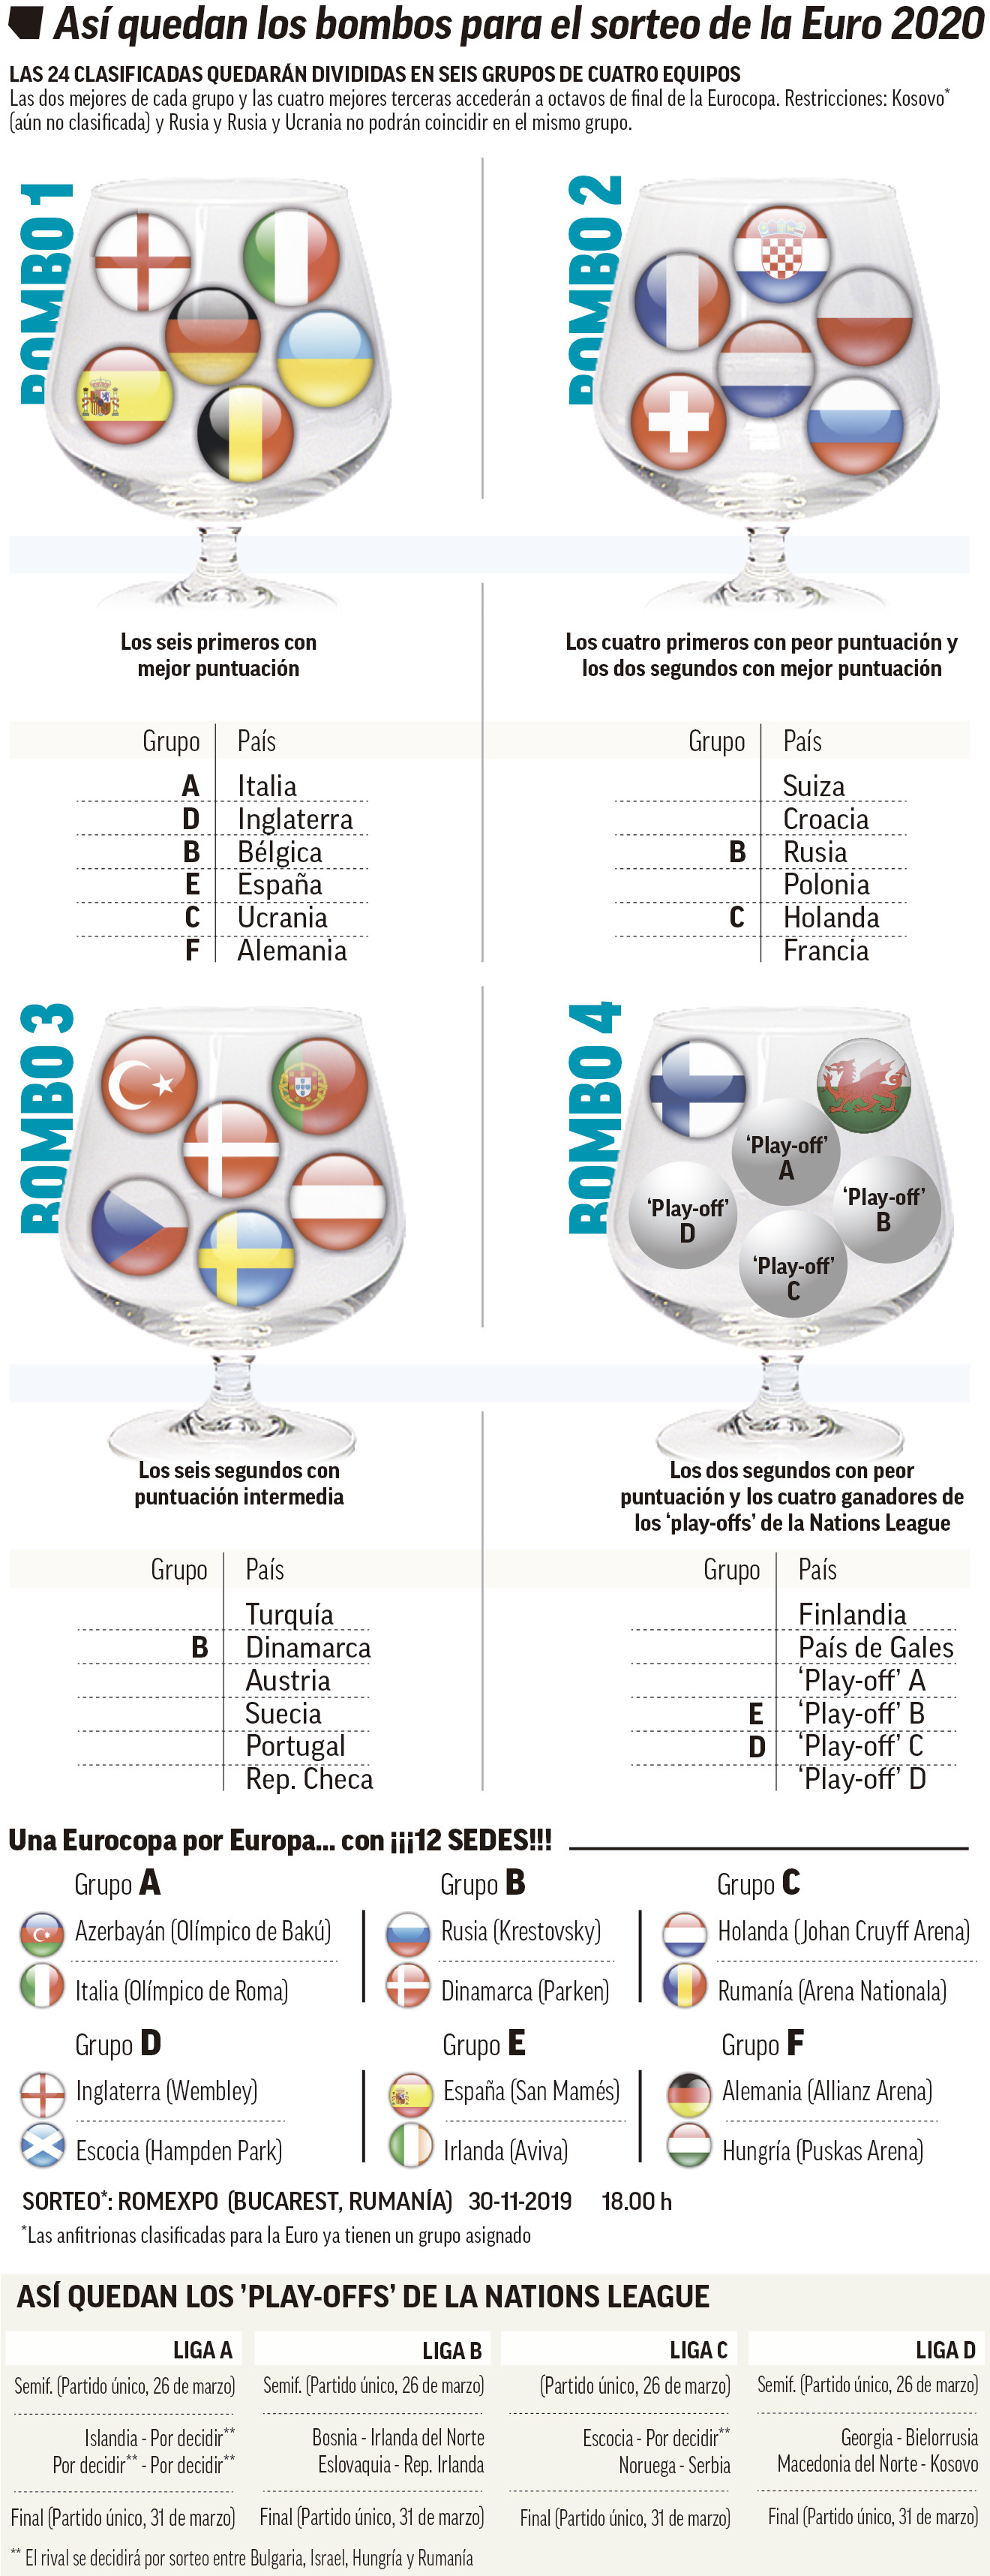 Almost There The 20 Teams Qualified For Euro 2020 And The 16 That Go Into The Playoffs Marca In English